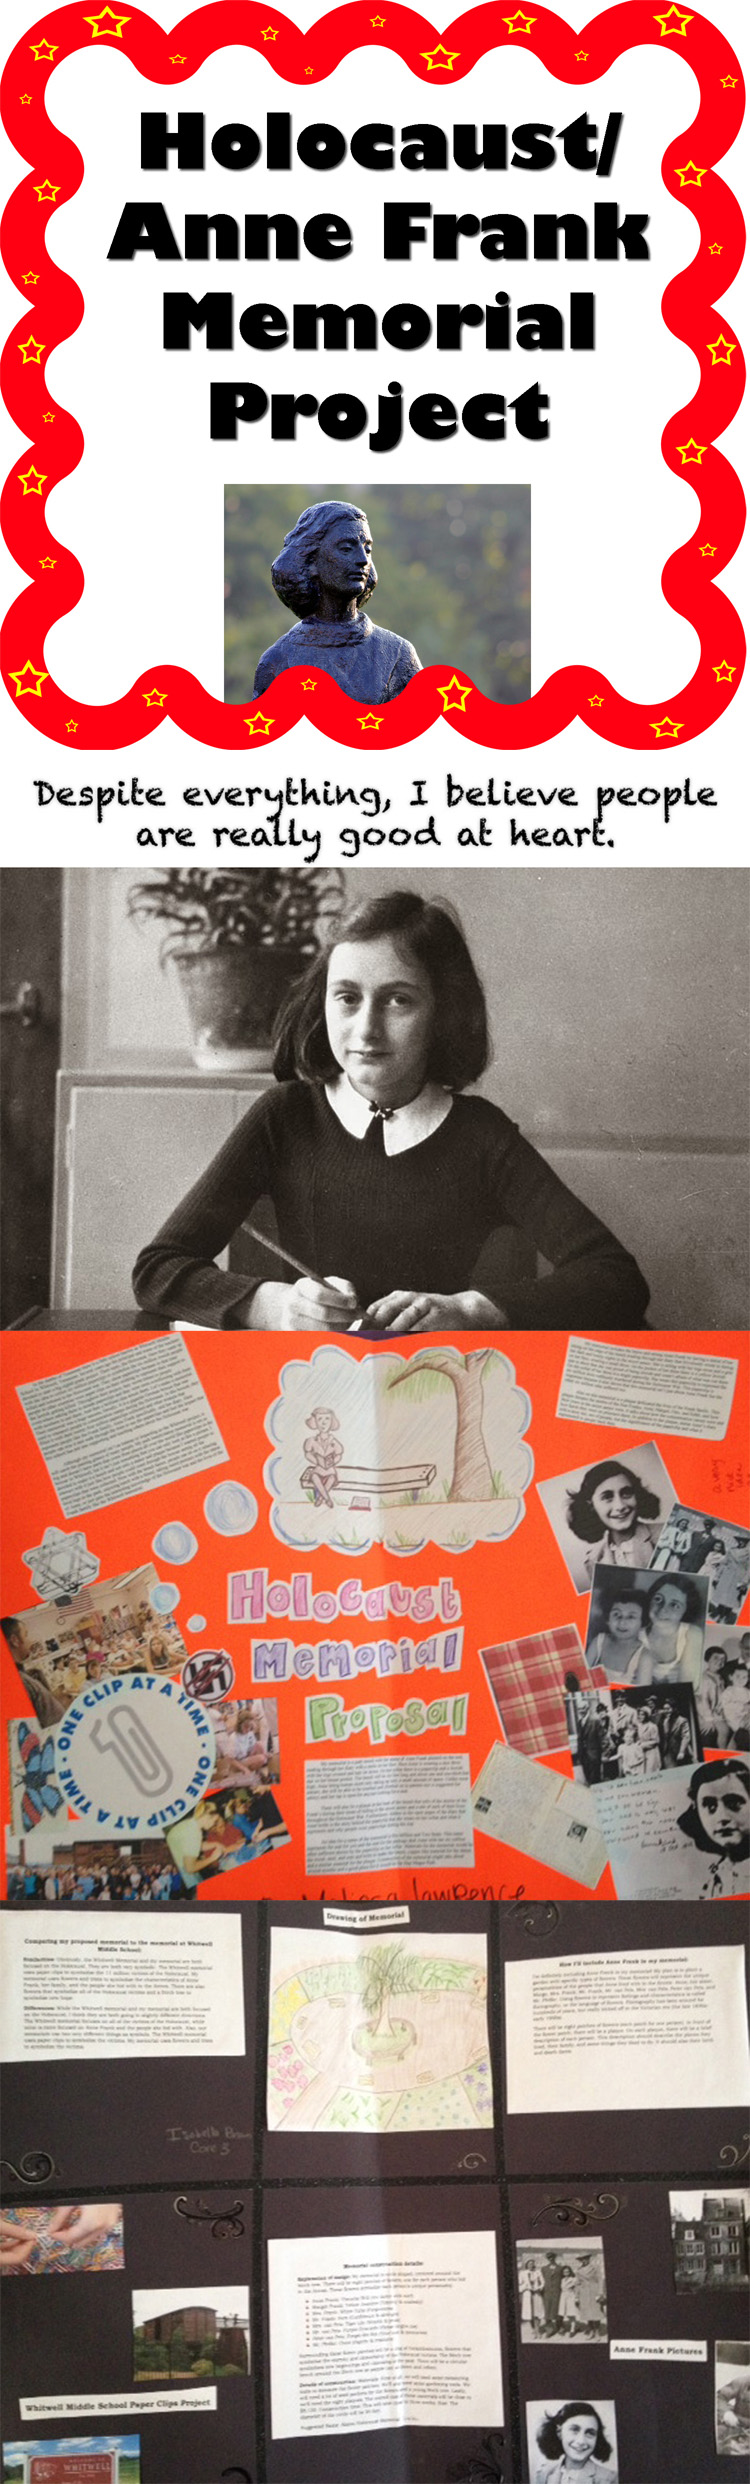 the diary of anne frank essay org resources for teaching the diary  holocaust diary of anne frank memorial project plays the o diary of anne frank paperclips holocaust